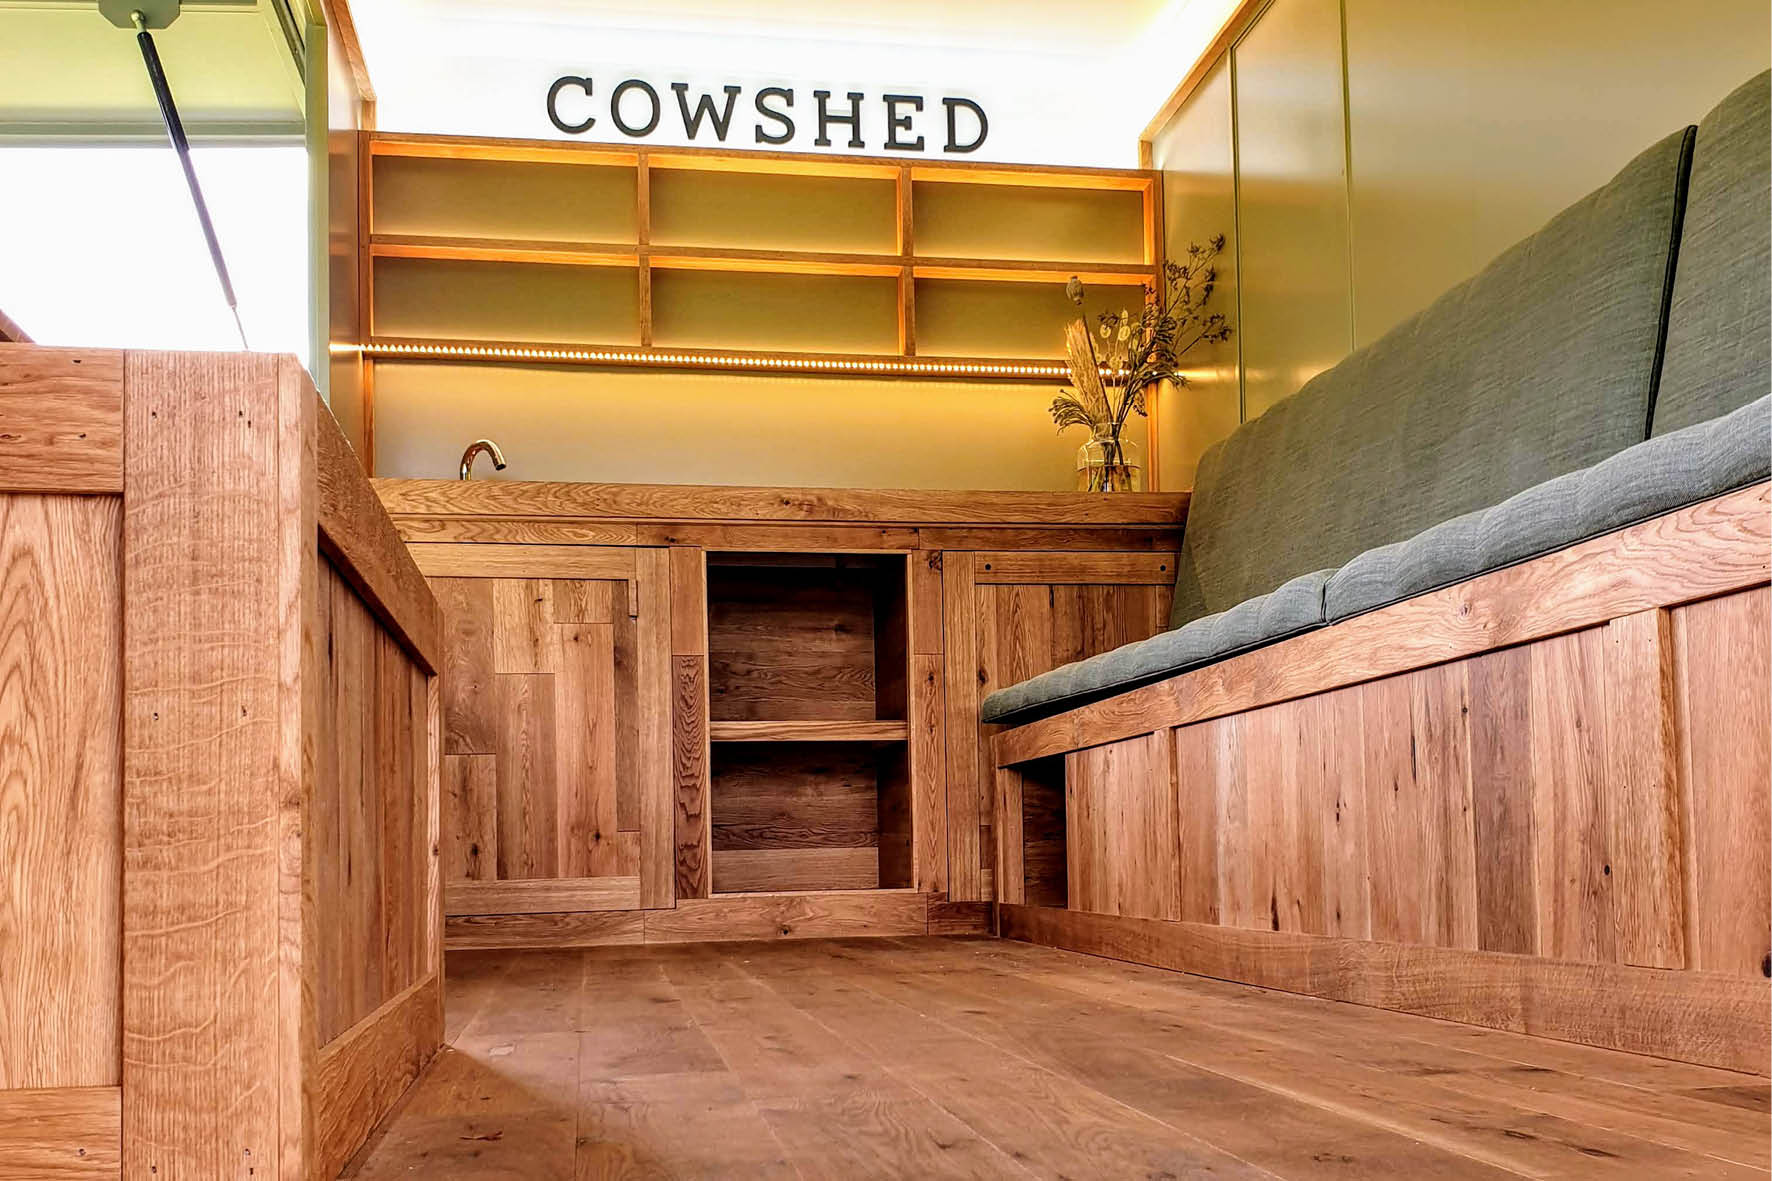 bus_business_2019_cowshed_9.jpg